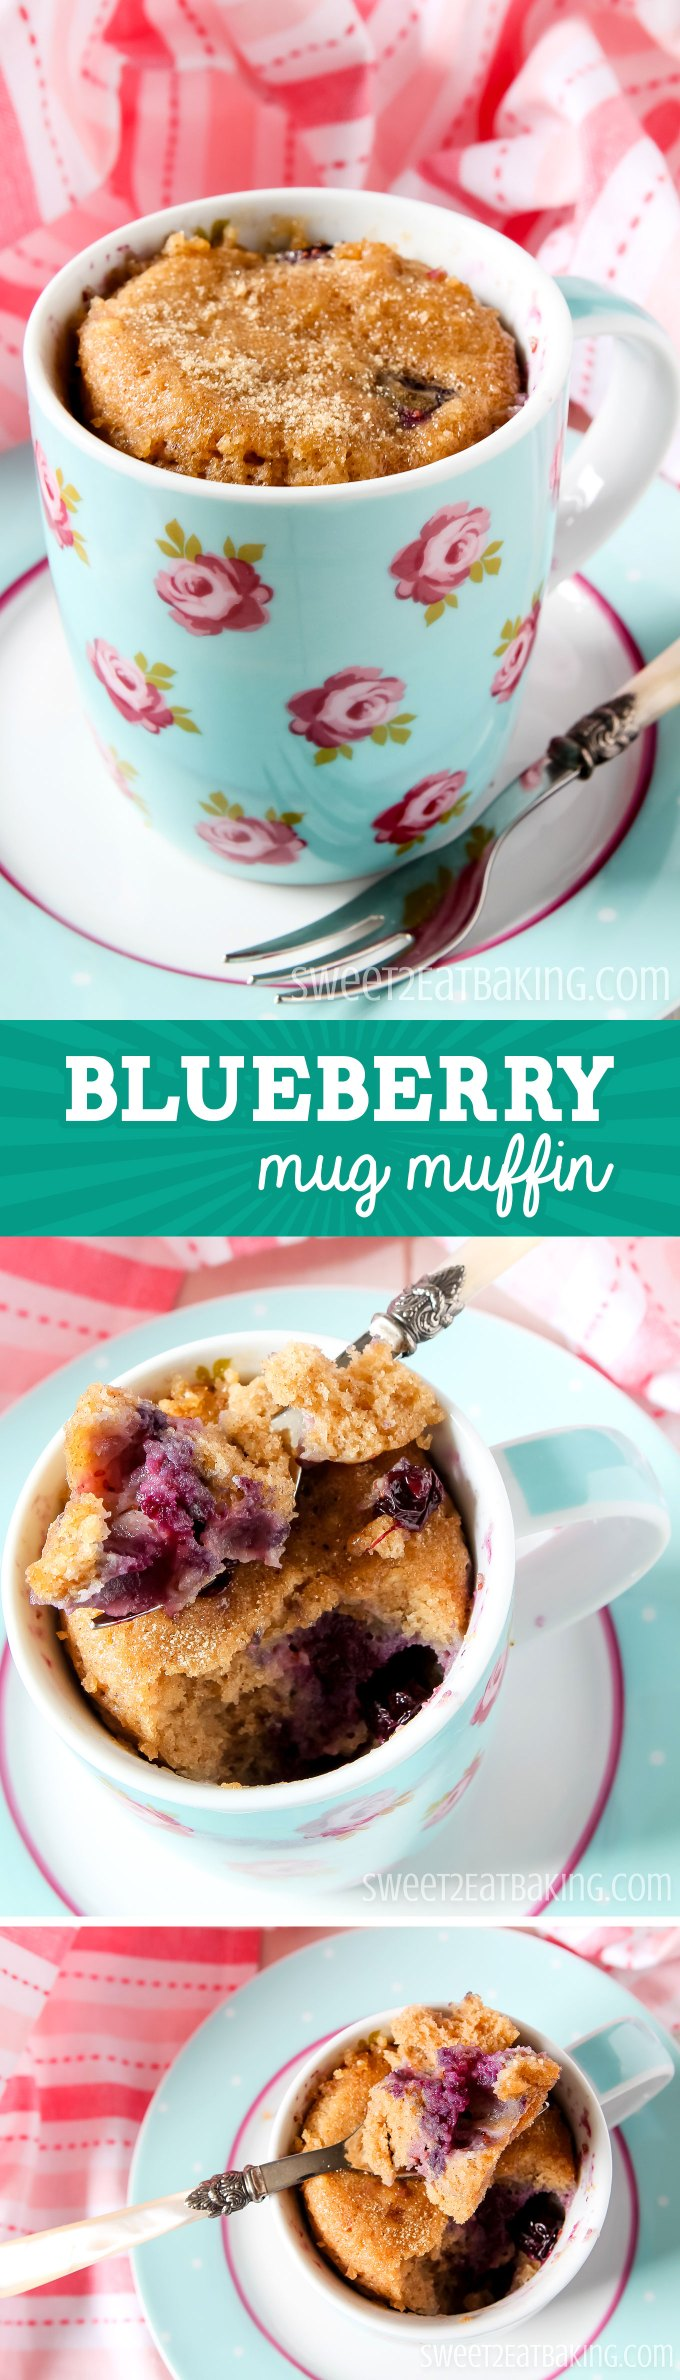 Quick & Easy 5-Minute Blueberry Mug Muffin Recipe by Sweet2EatBaking.com